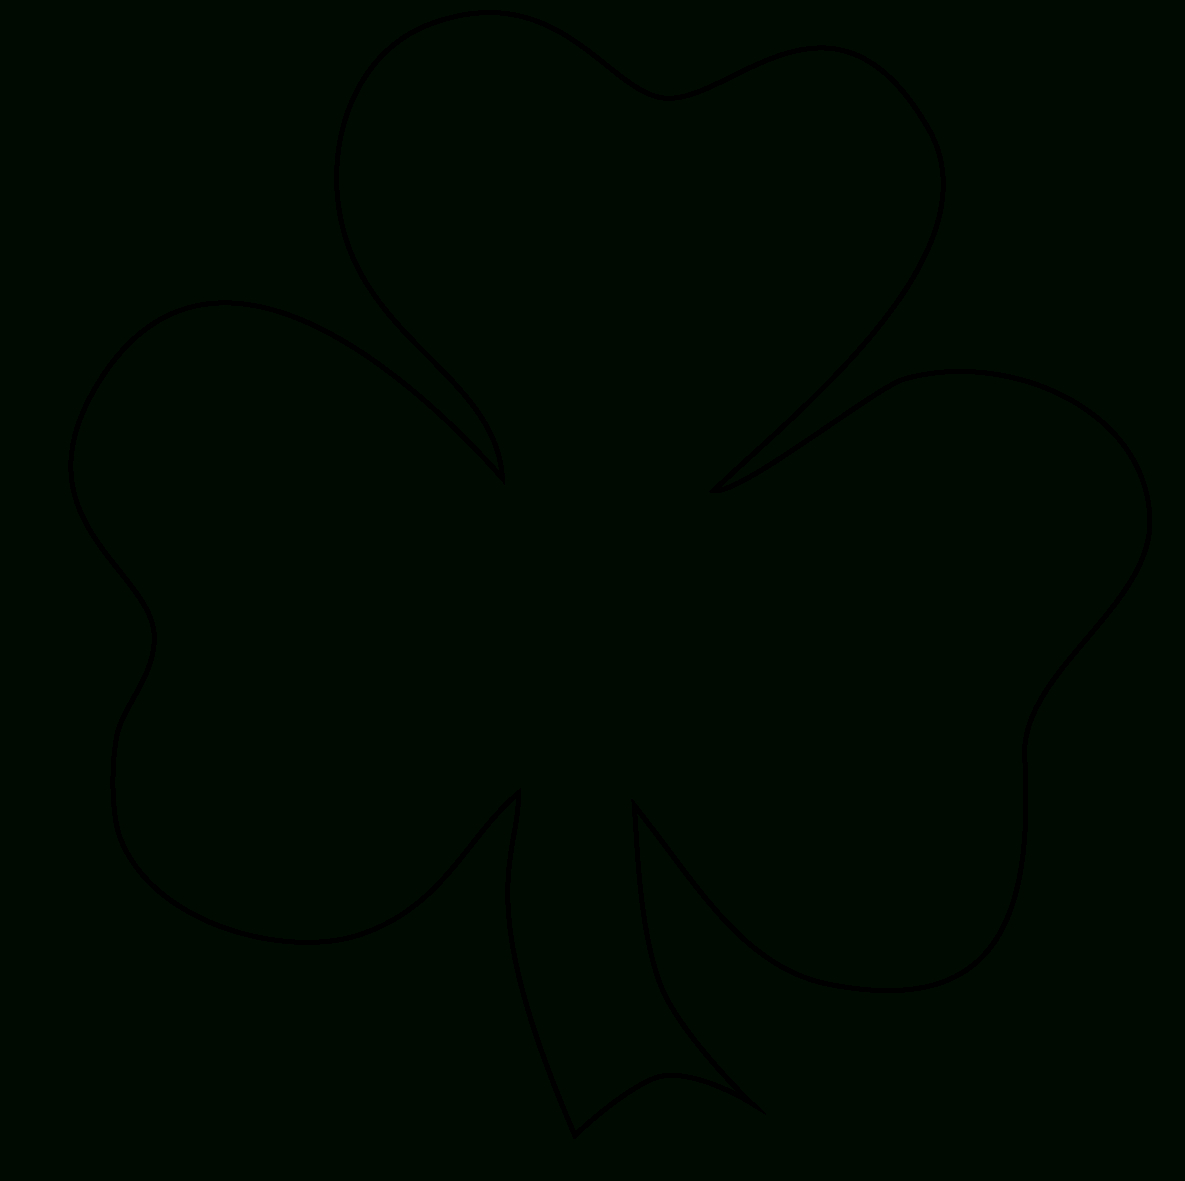 Free Shamrock Images, Download Free Clip Art, Free Clip Art On - Free Printable Shamrock Cutouts